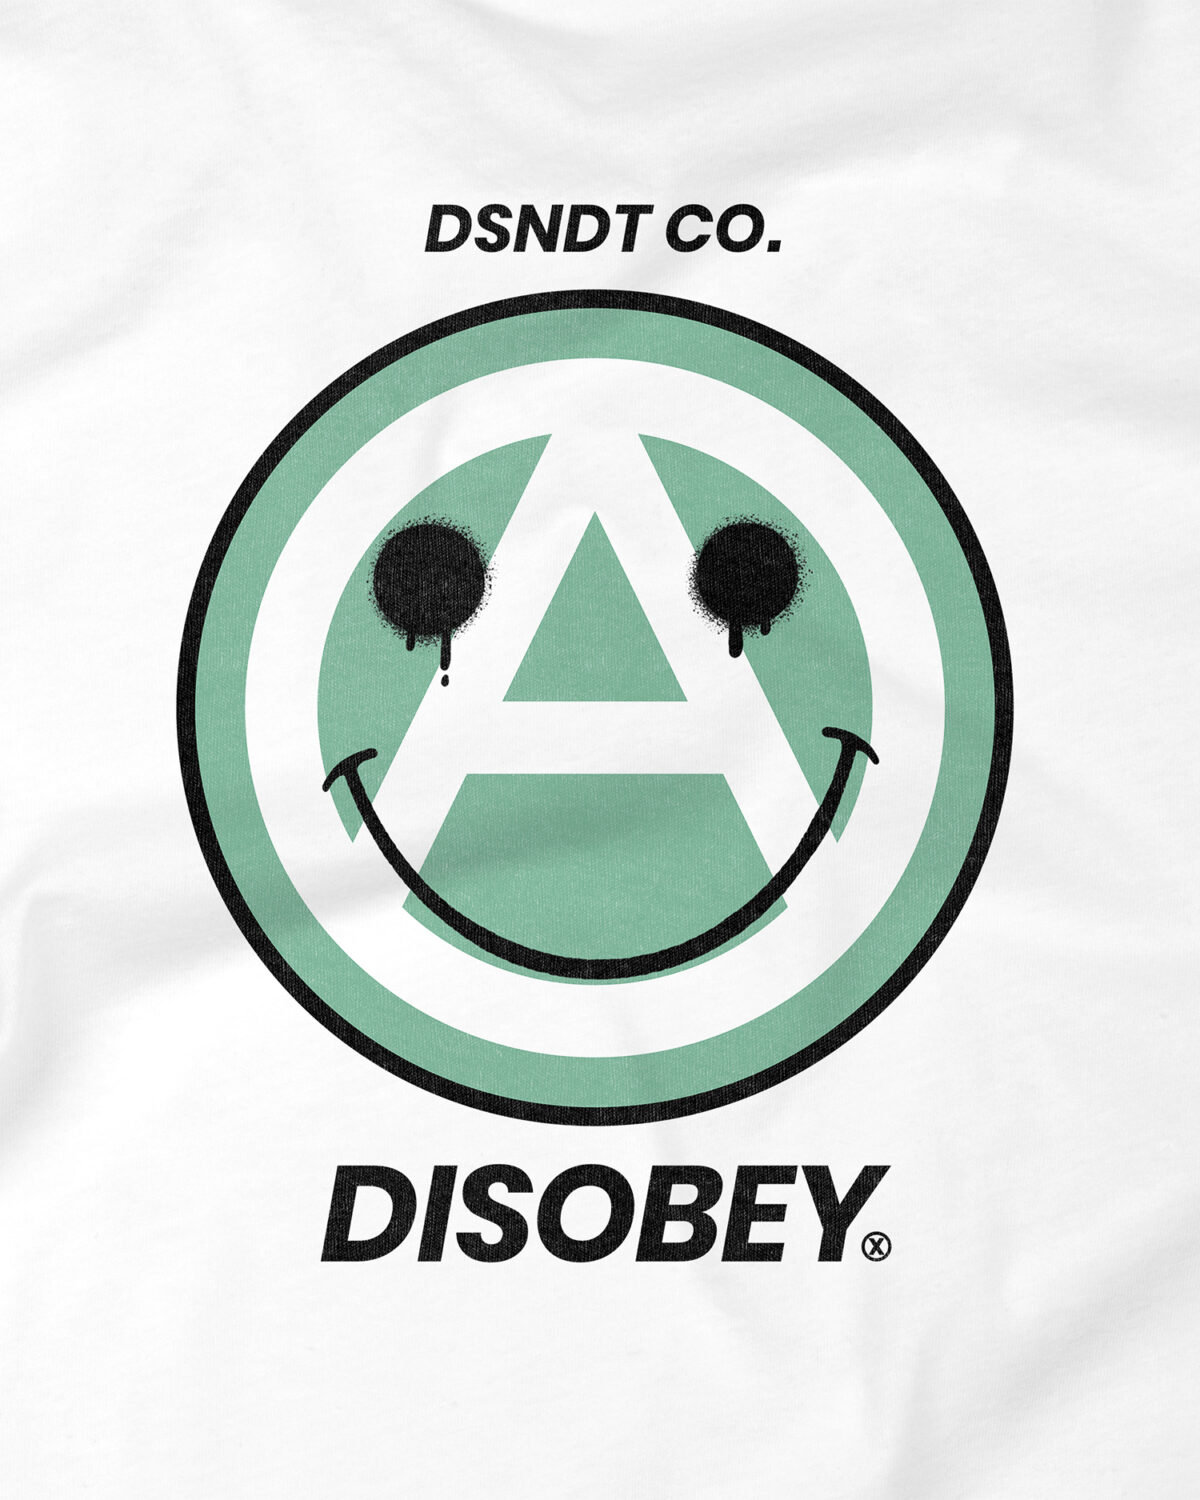 Zoom Camiseta Smile it's Anarchism Disobey Dissident Co